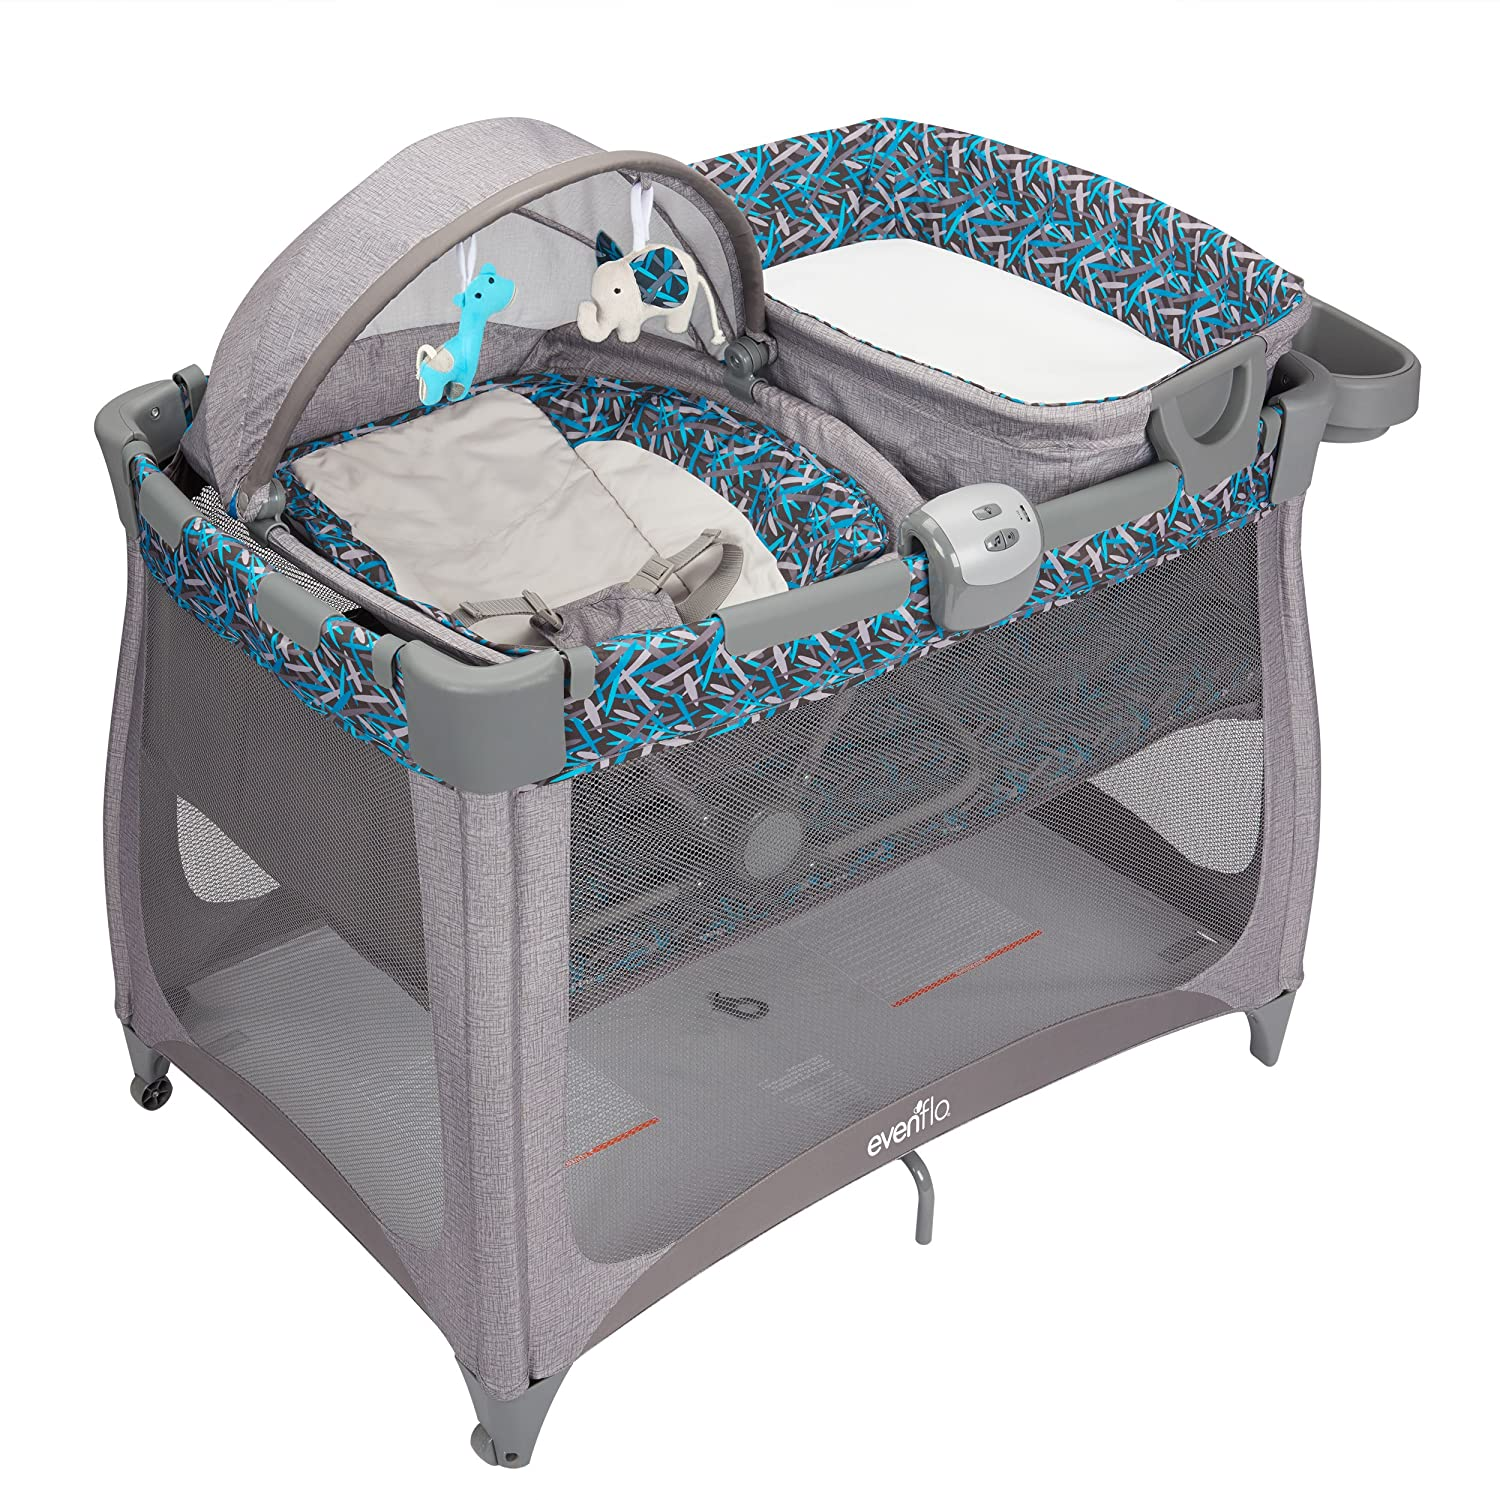 Evenflo Arena 4-in-1 Playard, Dash 70812110